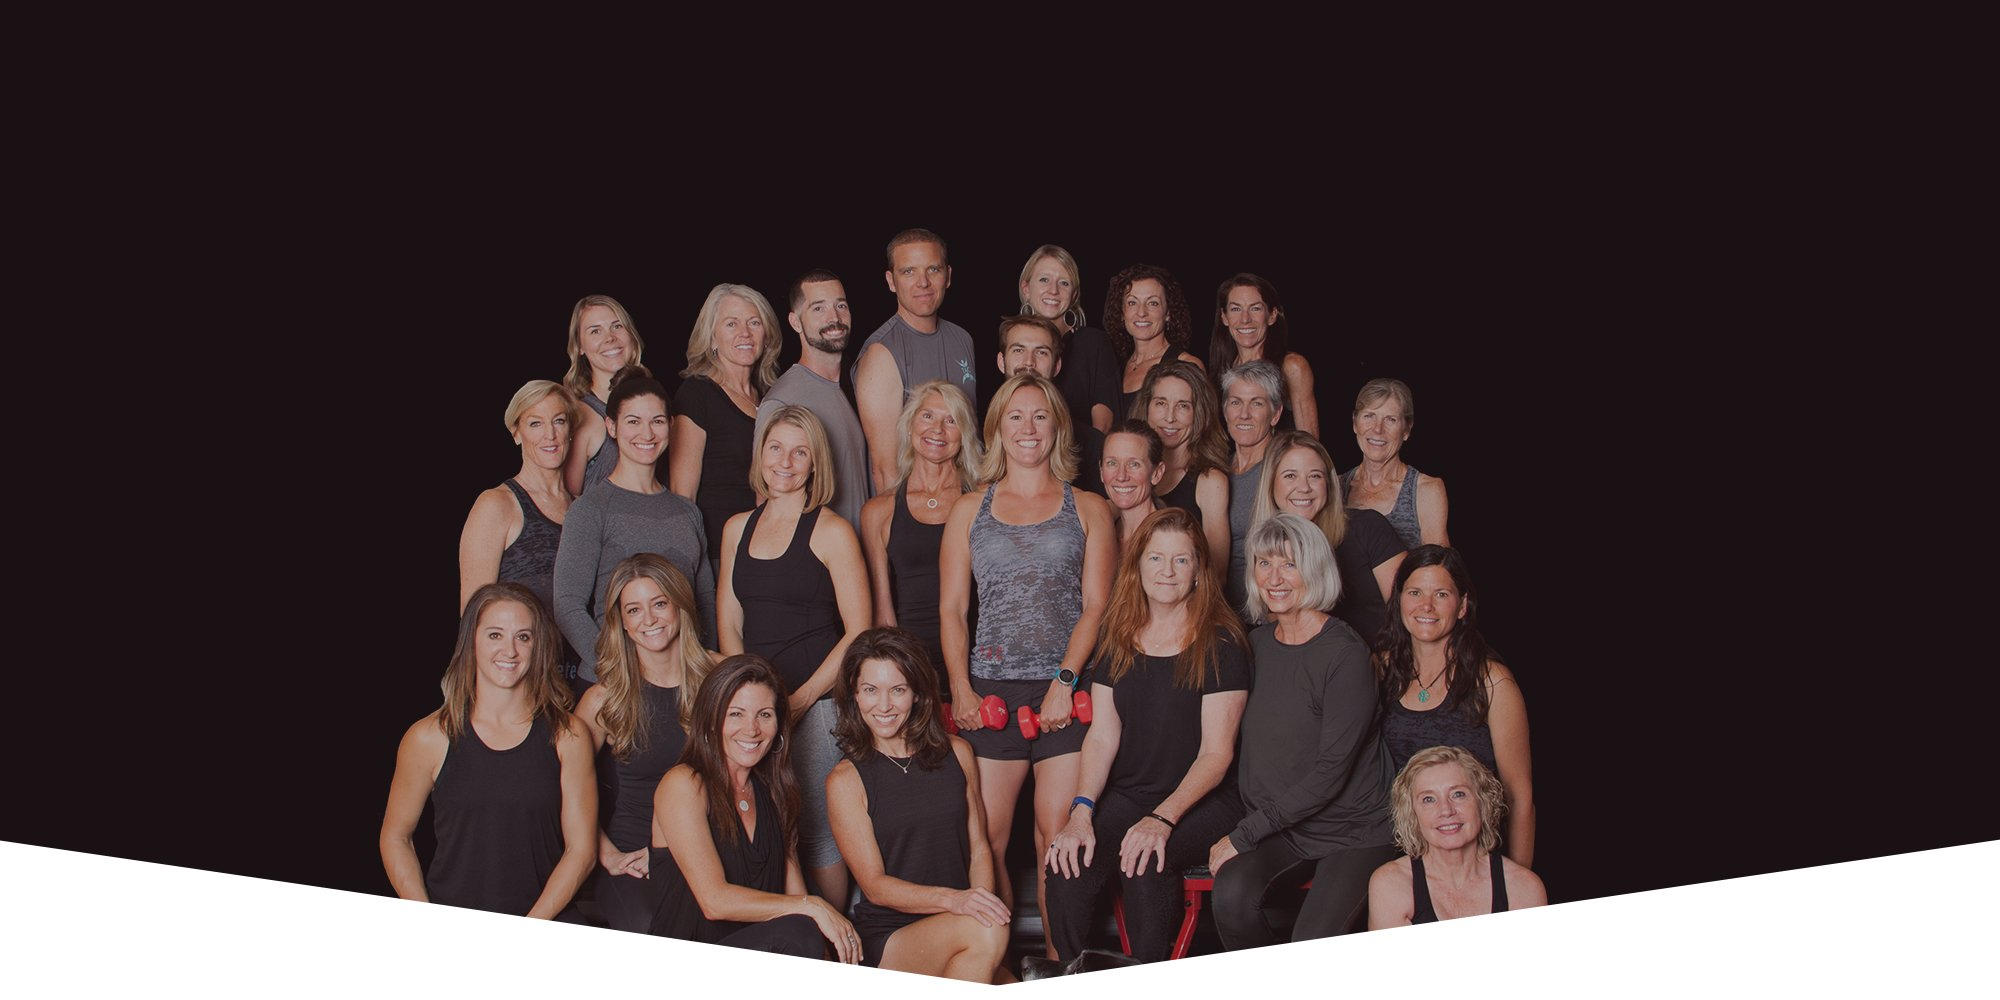 TACfit trainers group photo